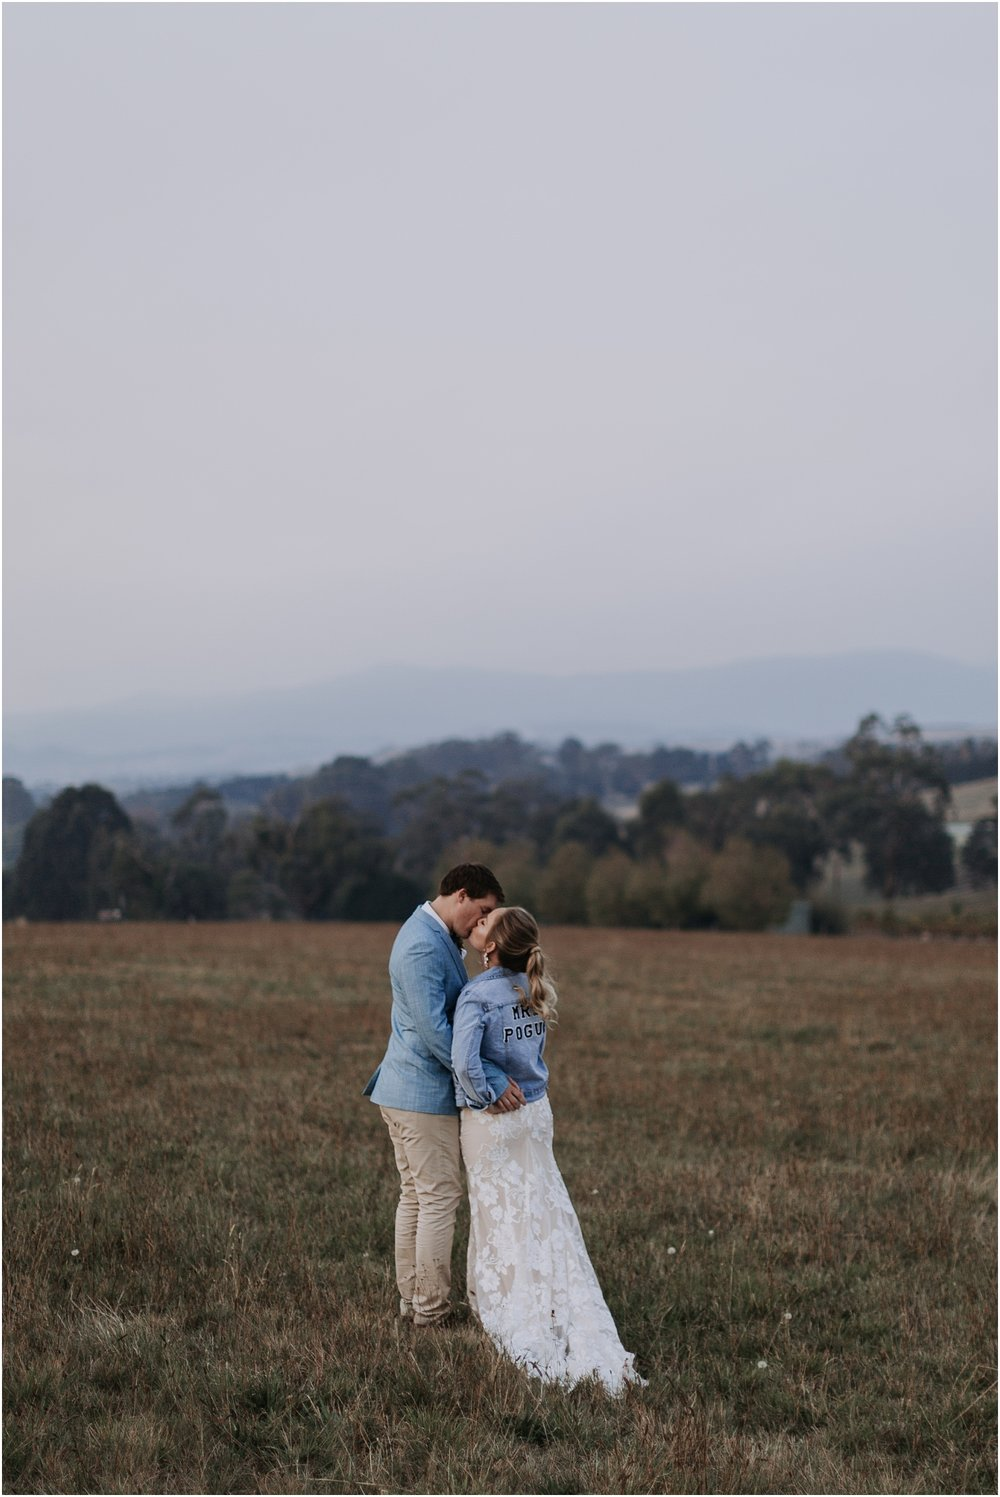 Lacey and Warwick's Yarra Valley winery wedding at Vines Helens Hill._0087.jpg